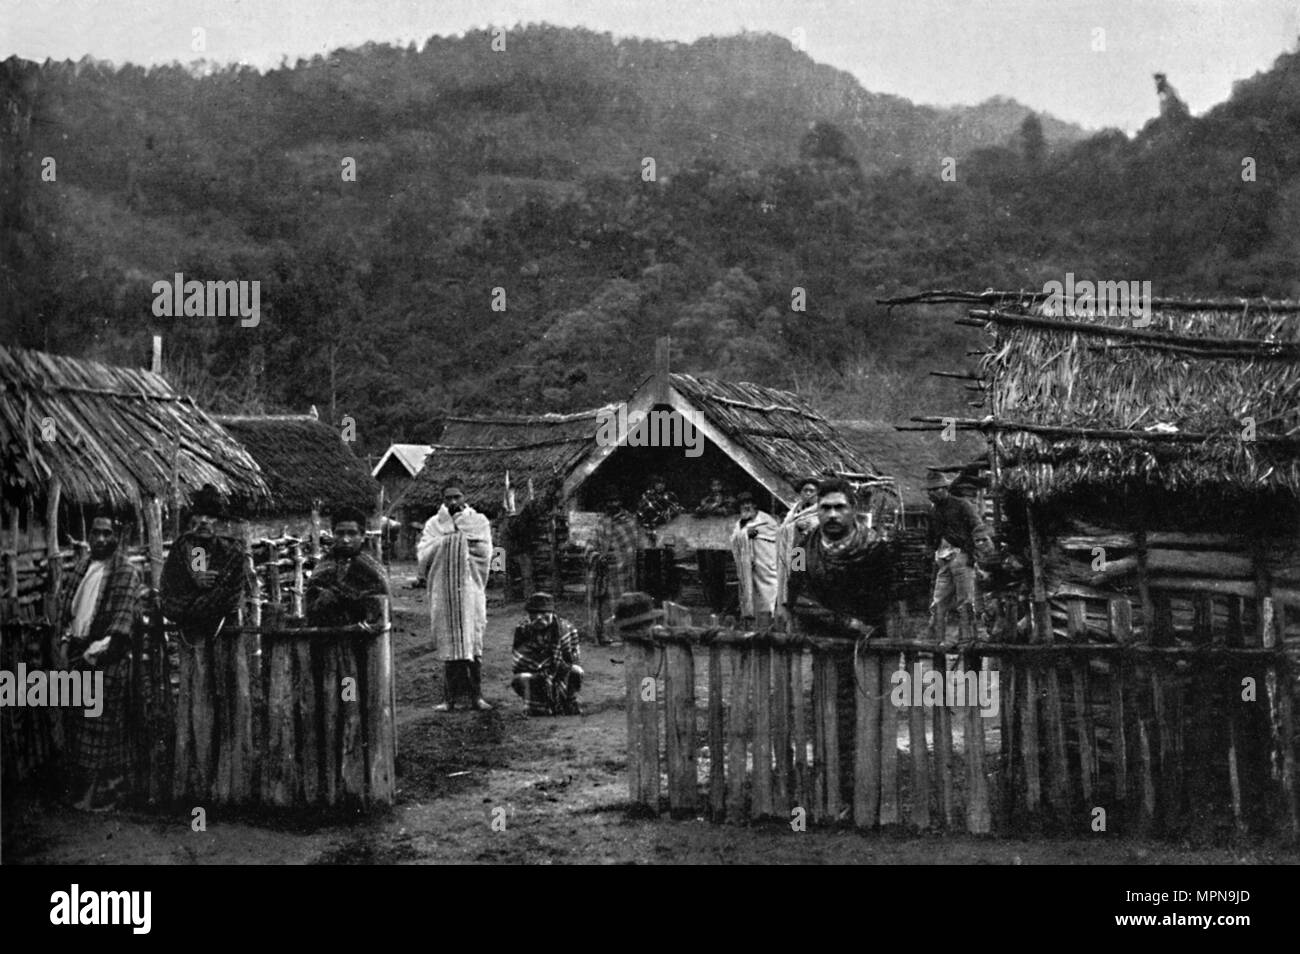 Maori pa, or fortified village, on the Whanganui River, North Island, New Zealand, 1902. Artist: Muir & Moodie. - Stock Image